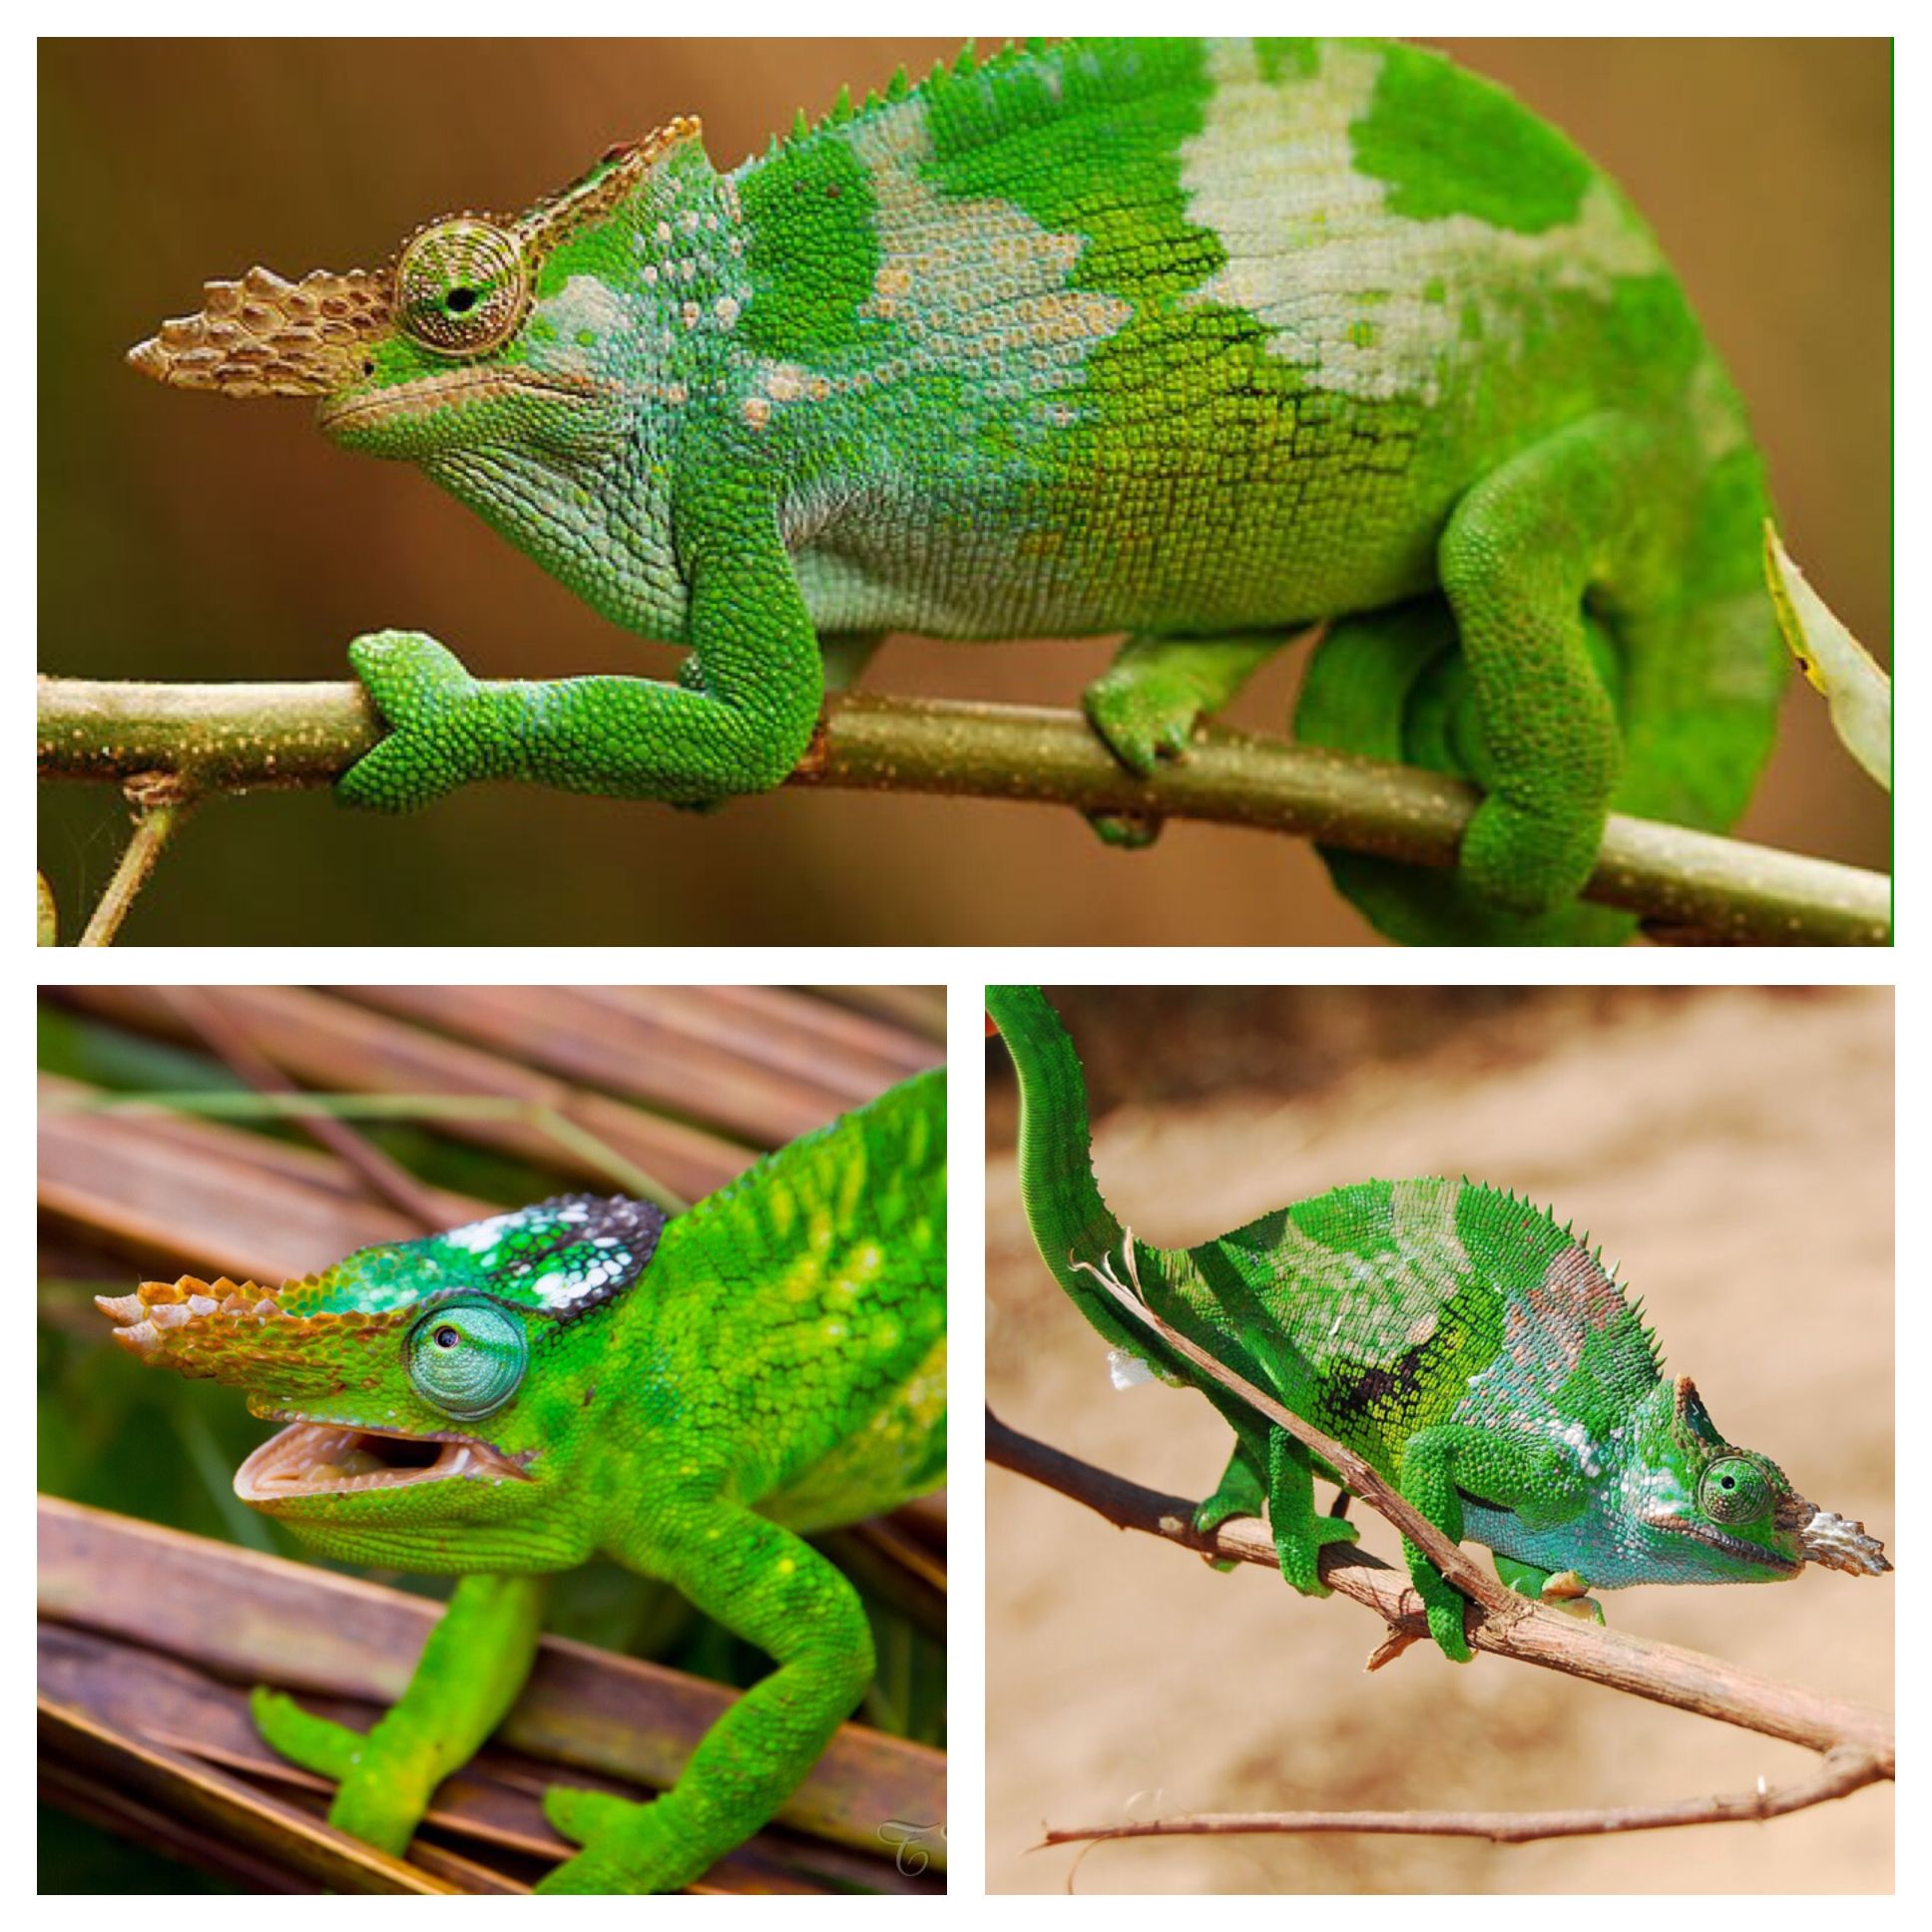 Fischer S Chameleon Is A Species Of Chameleon Endemic To Tanzania